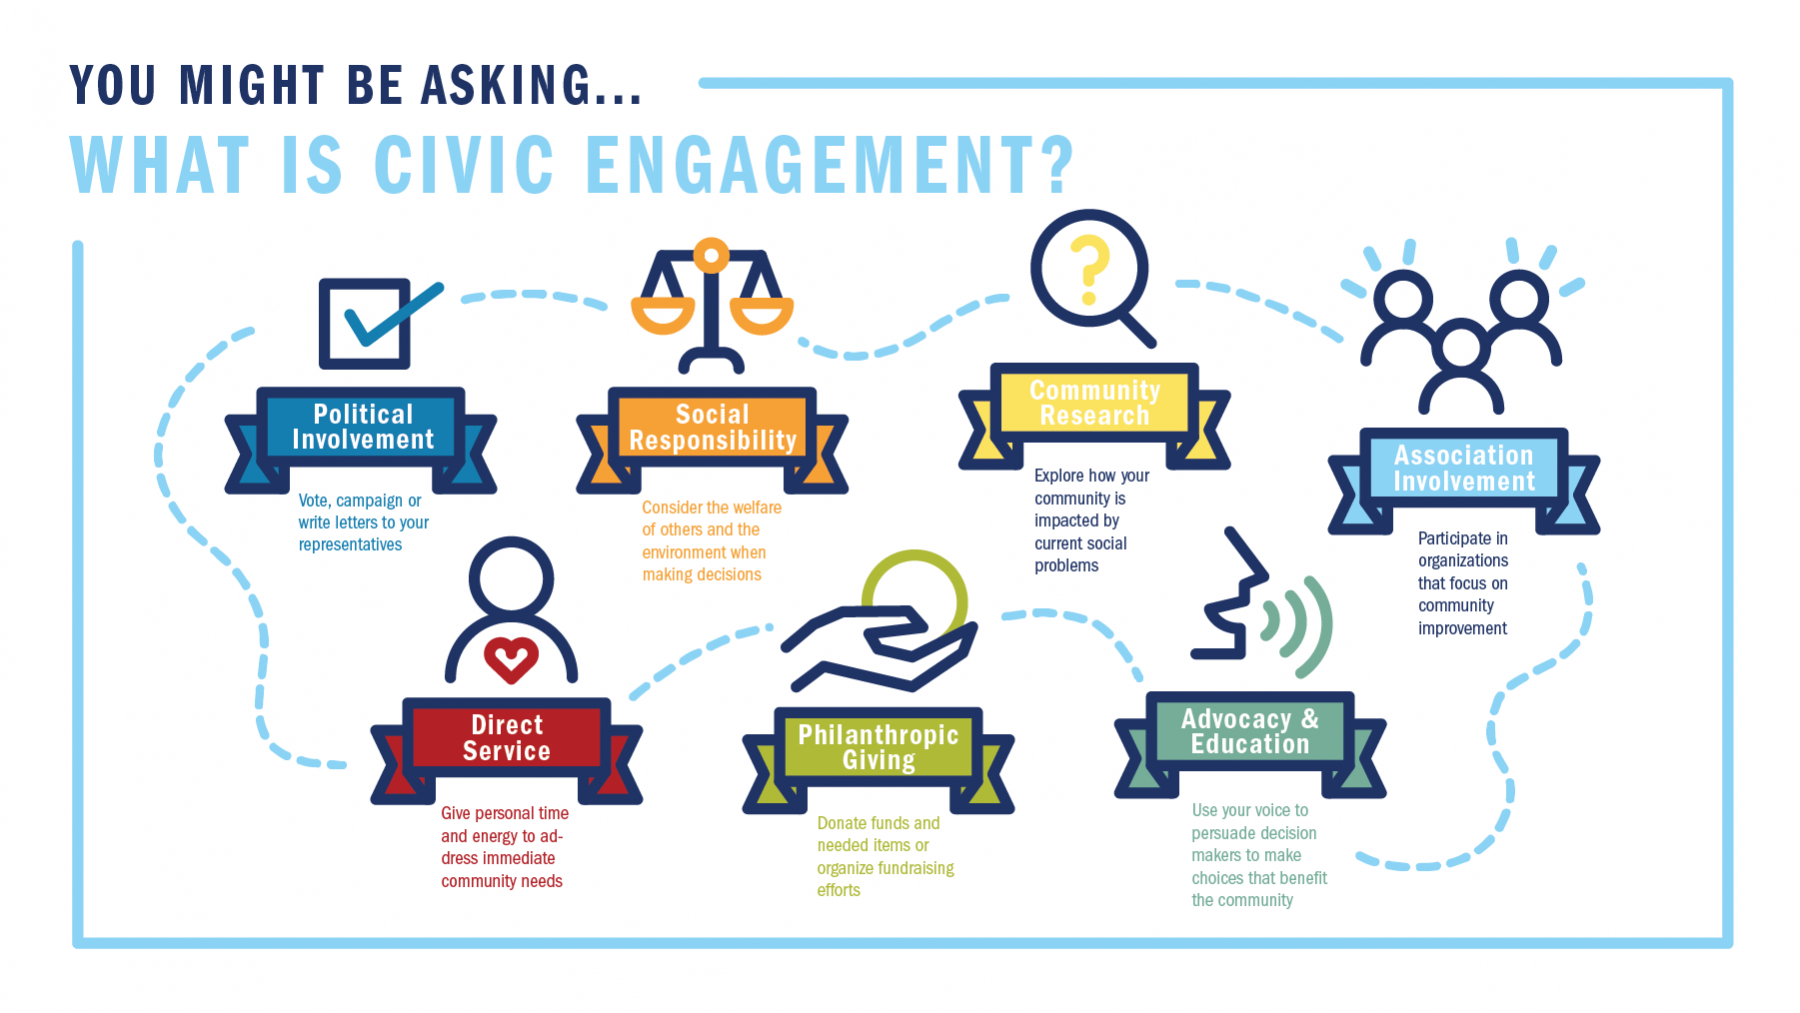 What is civic engagement? Political involvement, social responsibility, community research, association involvement, direct service, philanthropic giving, advocacy and education